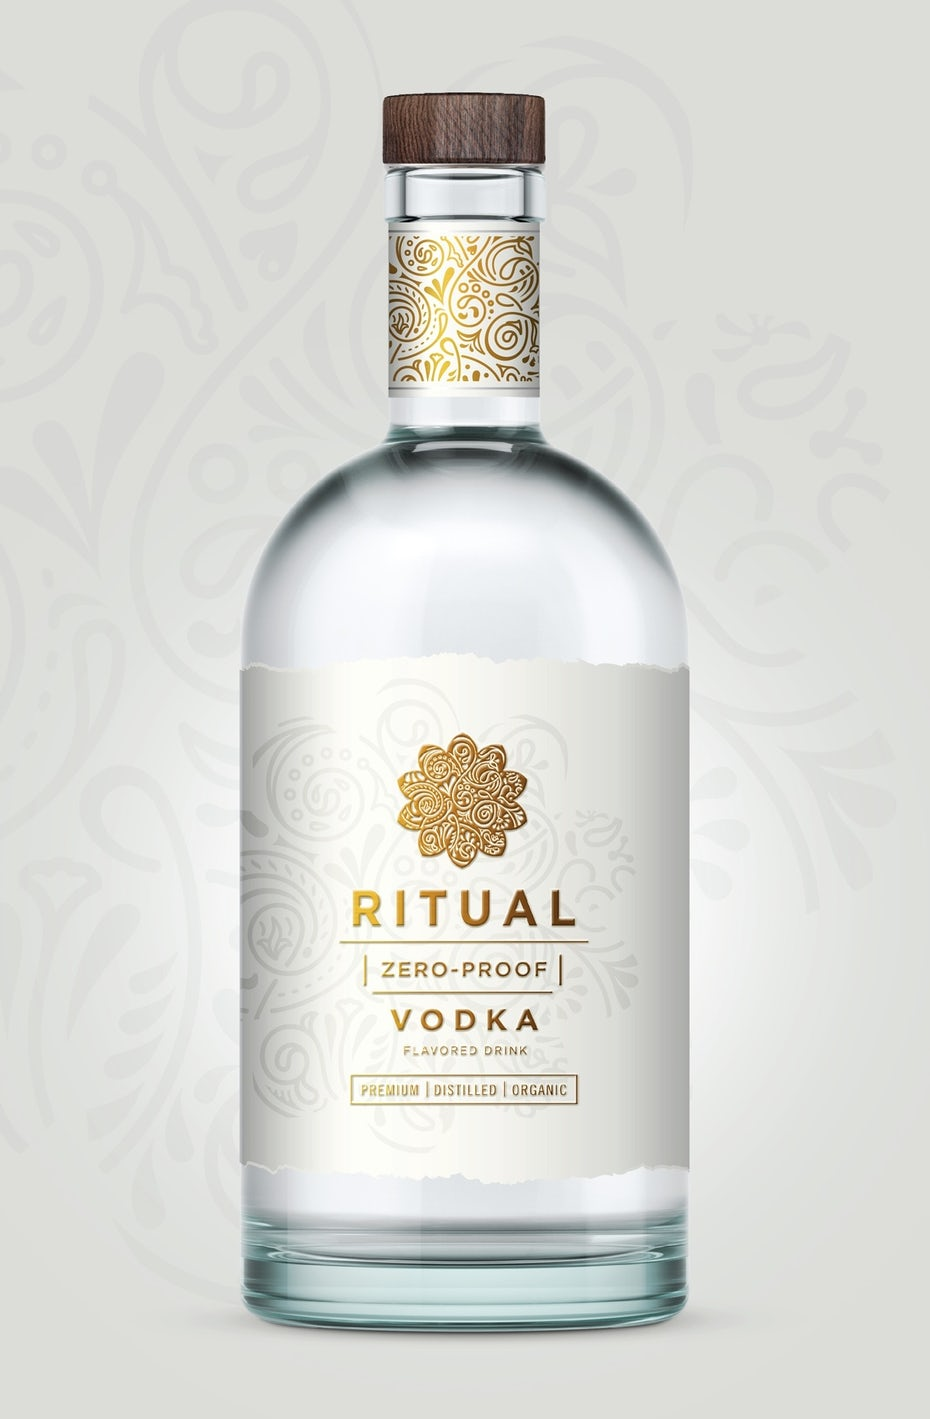 Clear bottle with a white label displaying a geometric gold logo